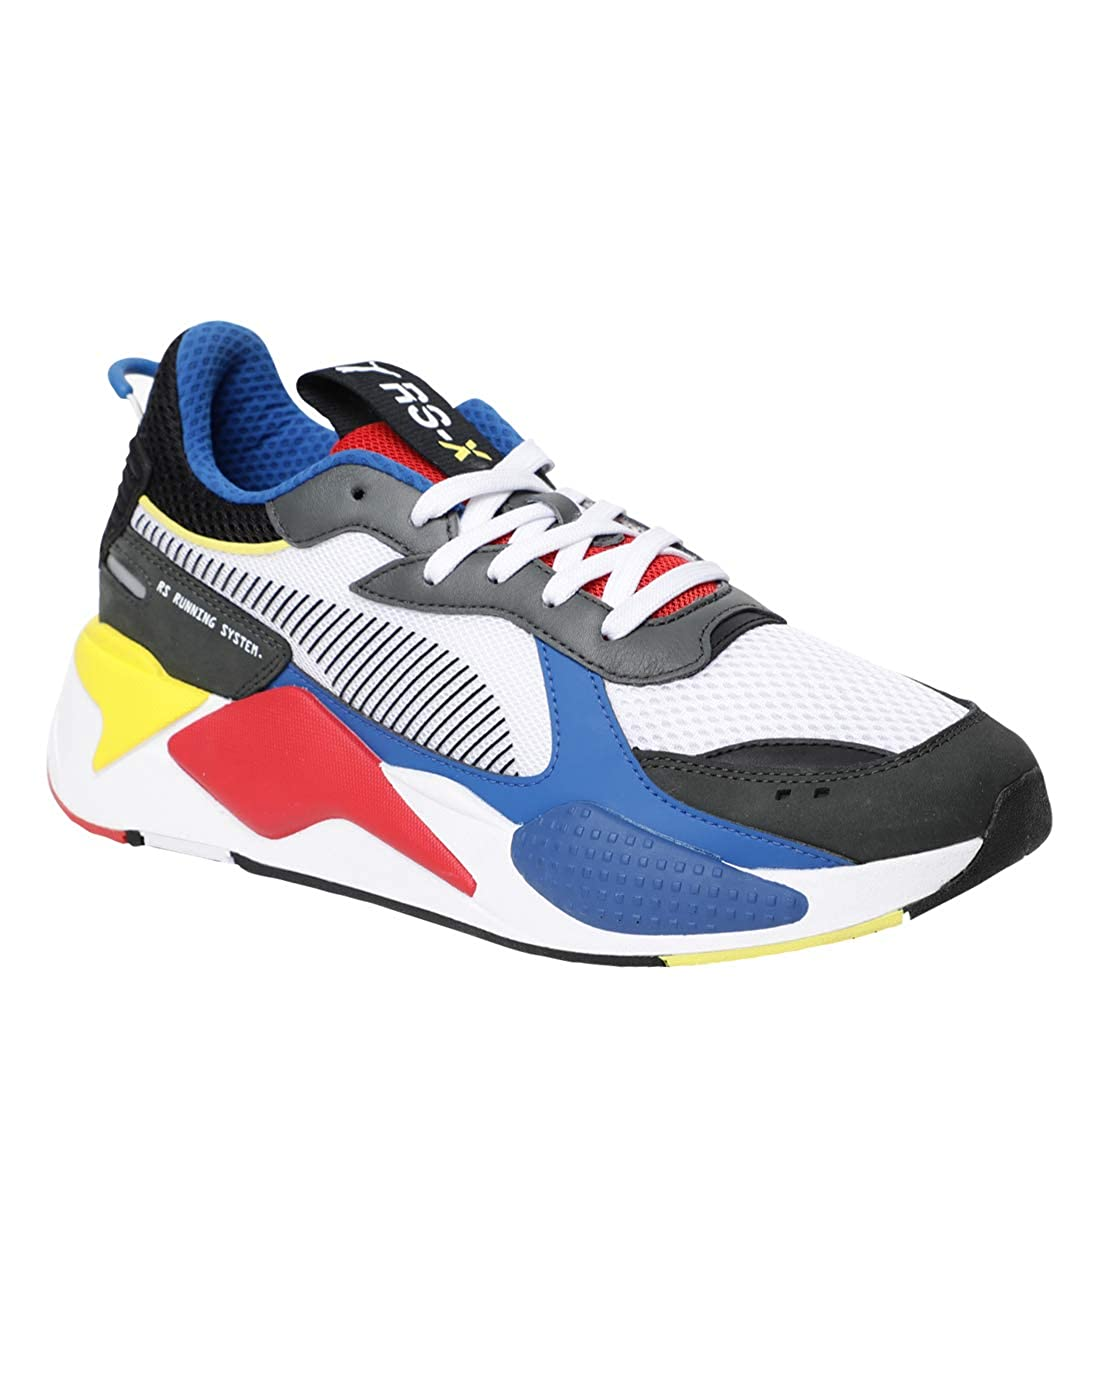 Buy Puma Unisex RS-X Toys at Amazon.in